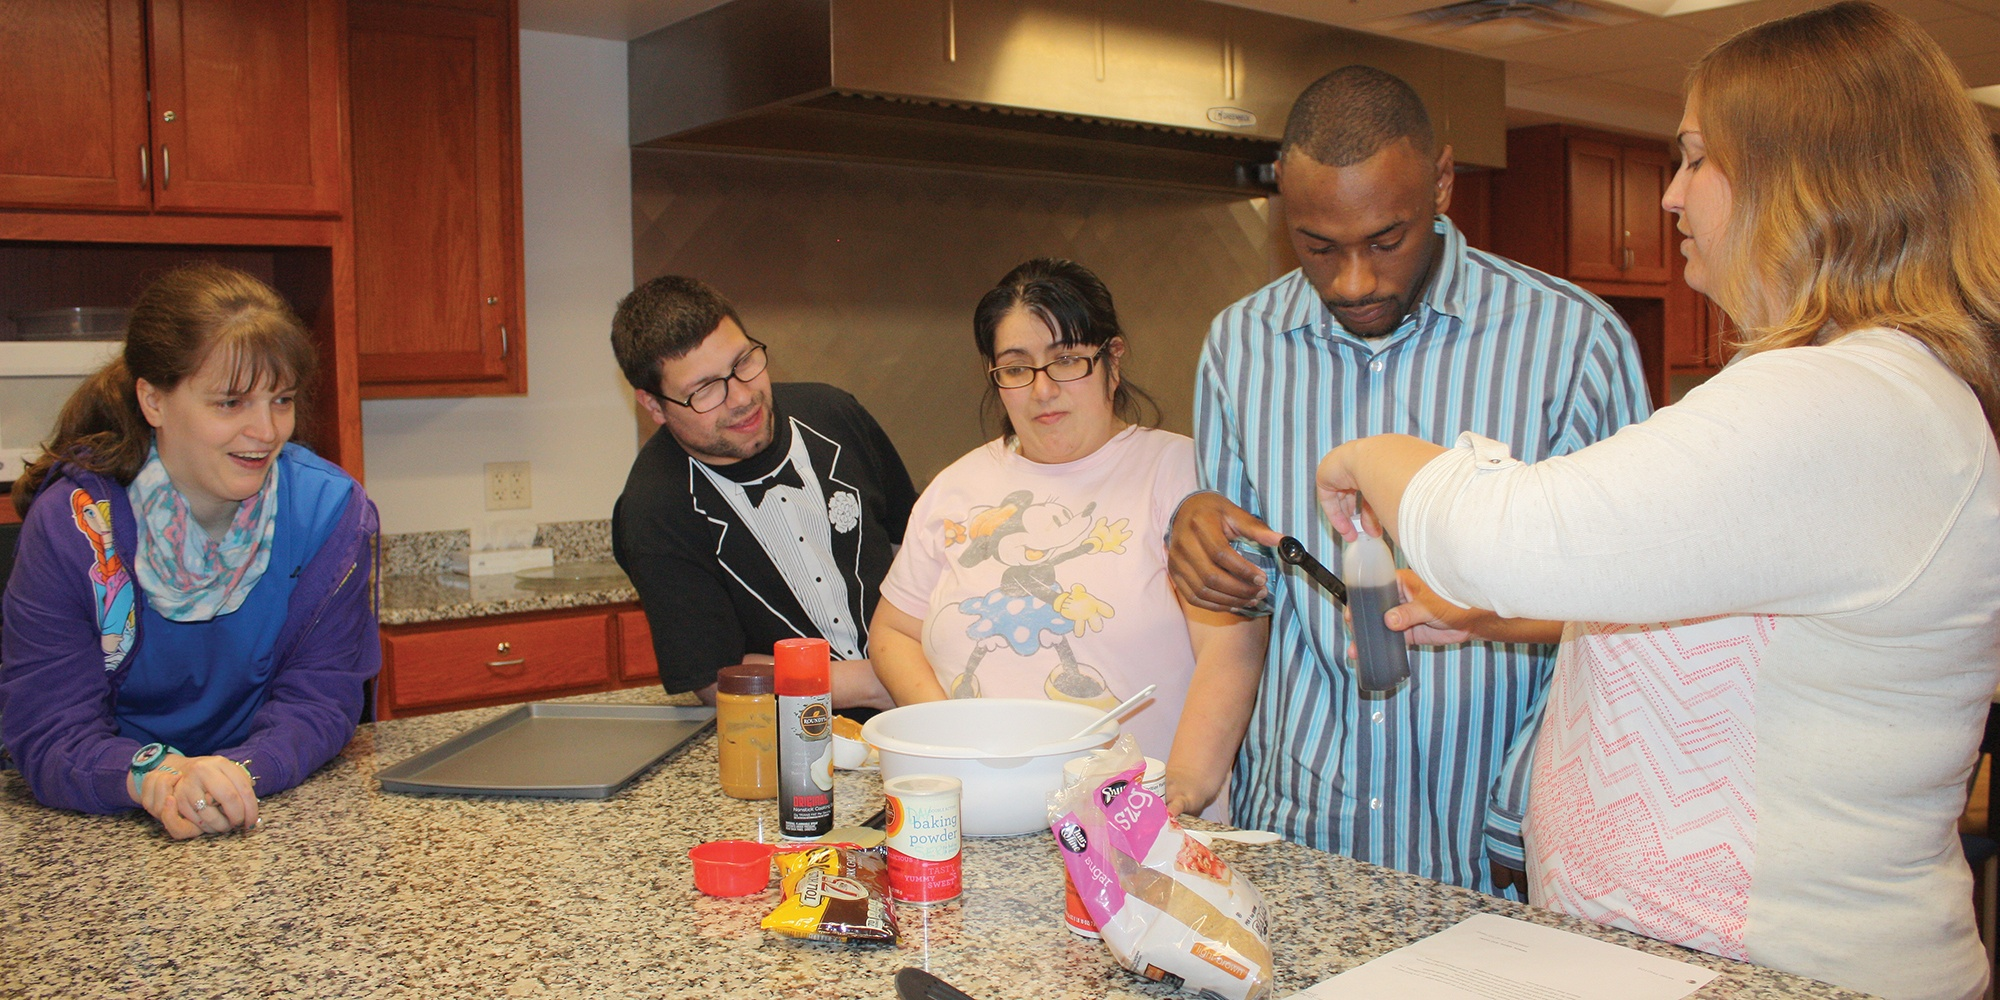 Goodwill's Life Skills Development program supports young adults with developmental disabilities